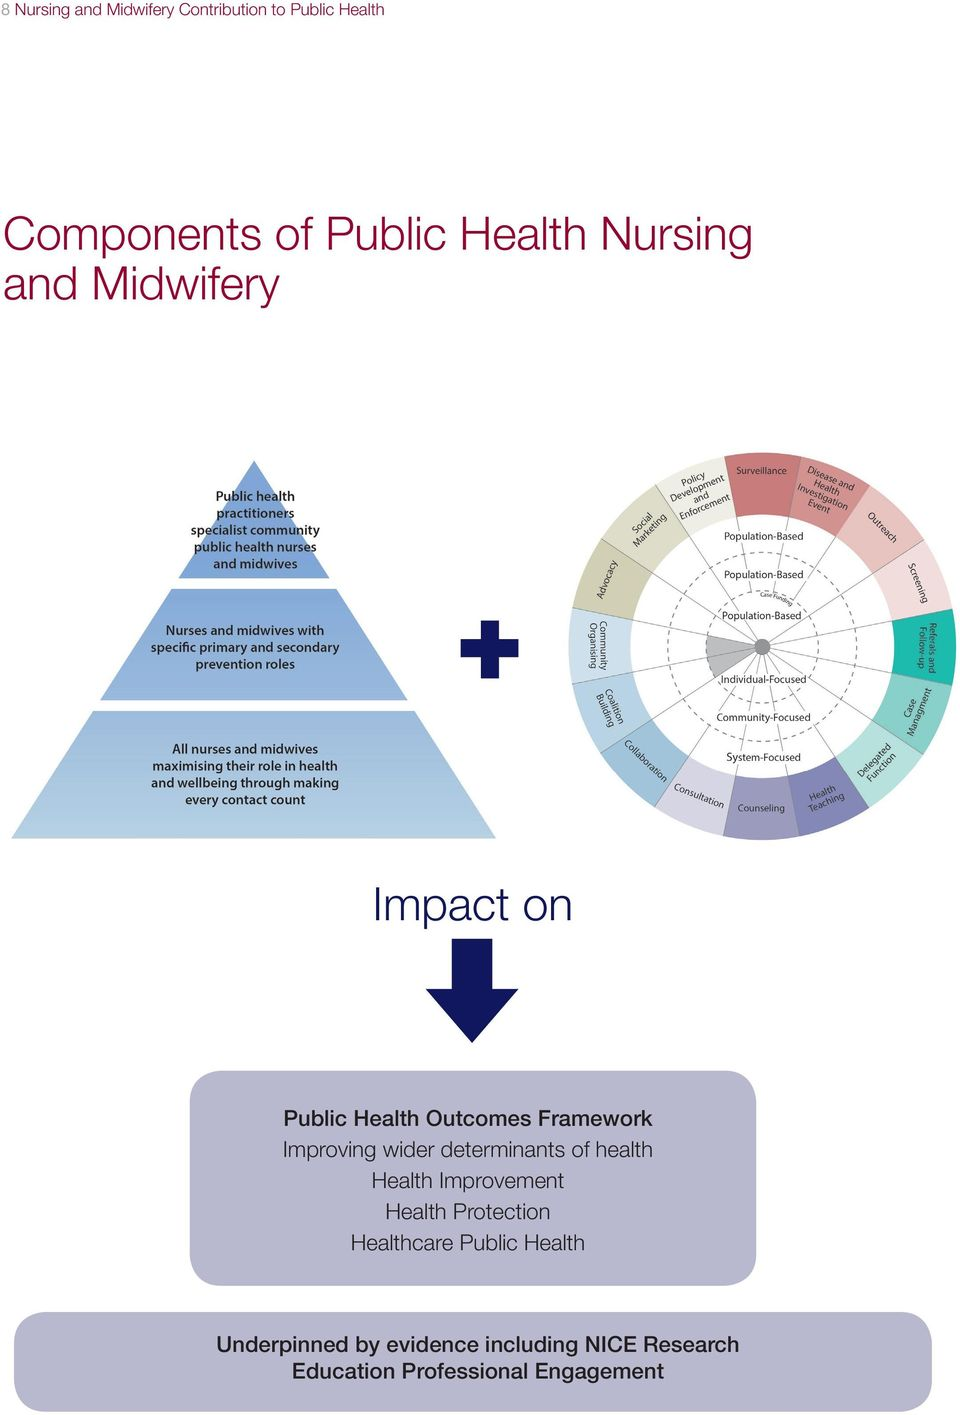 determinants of health Health Improvement Health Protection Healthcare Public